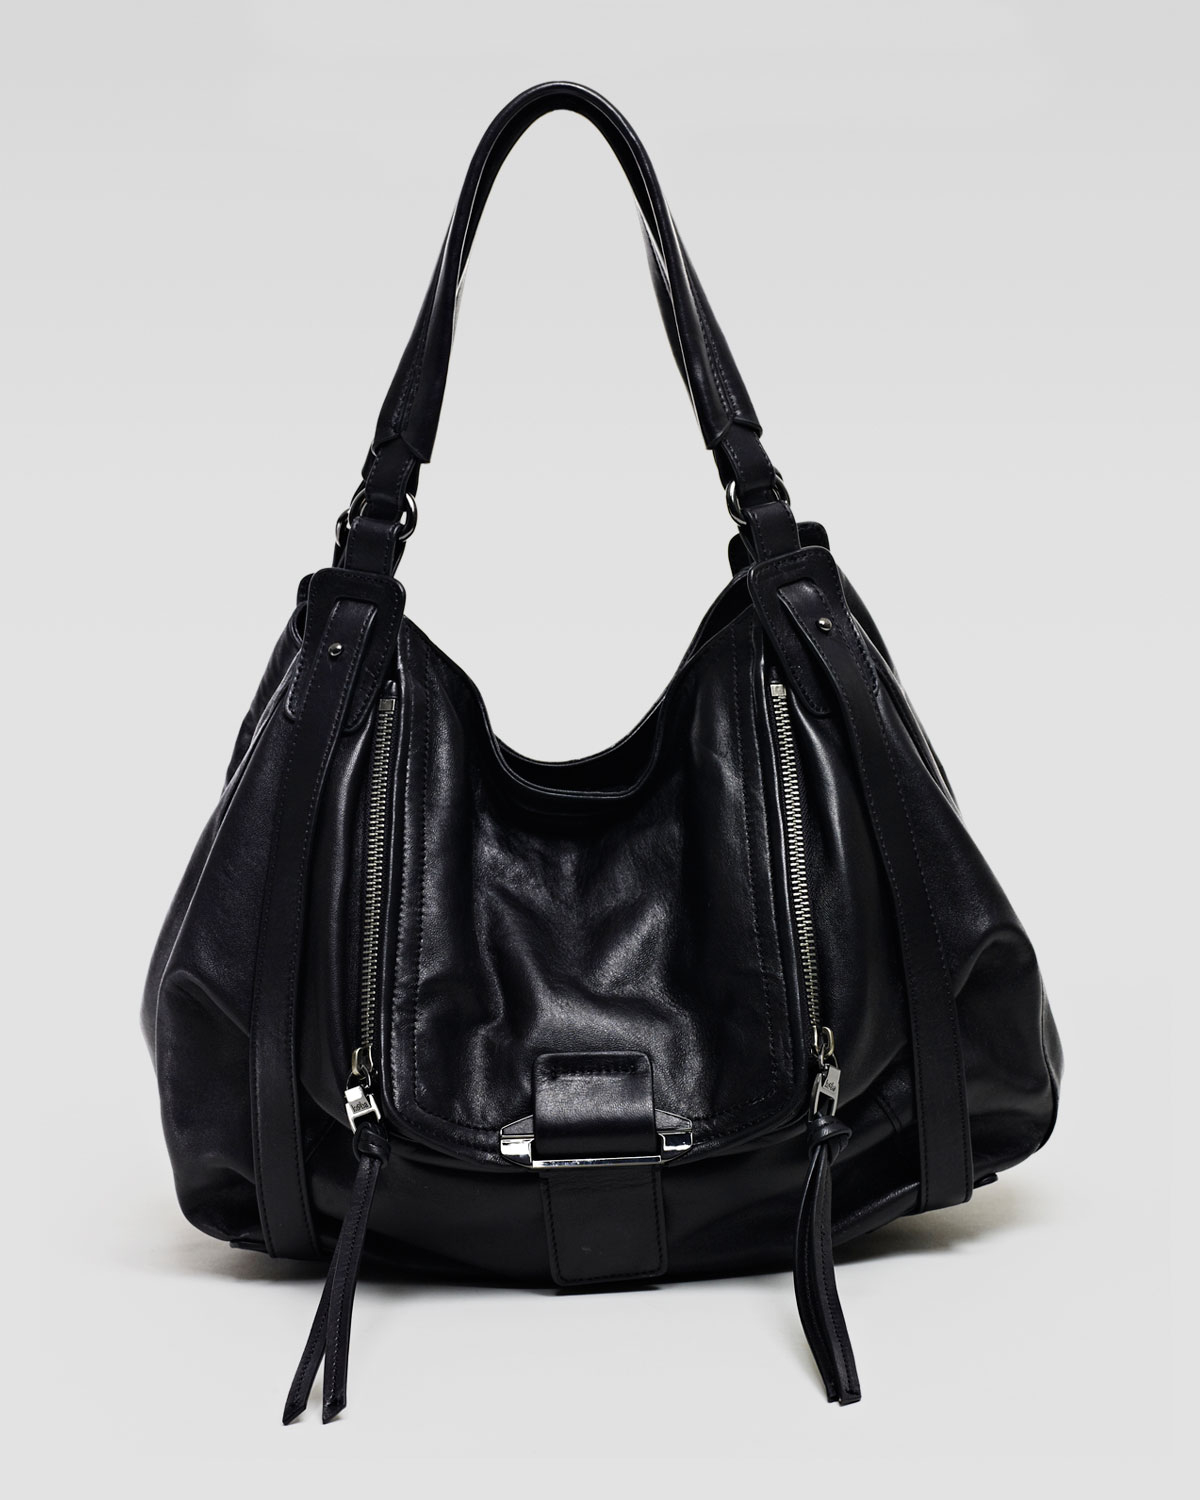 Kooba Jonnie Hobo Bag Black in Black | Lyst